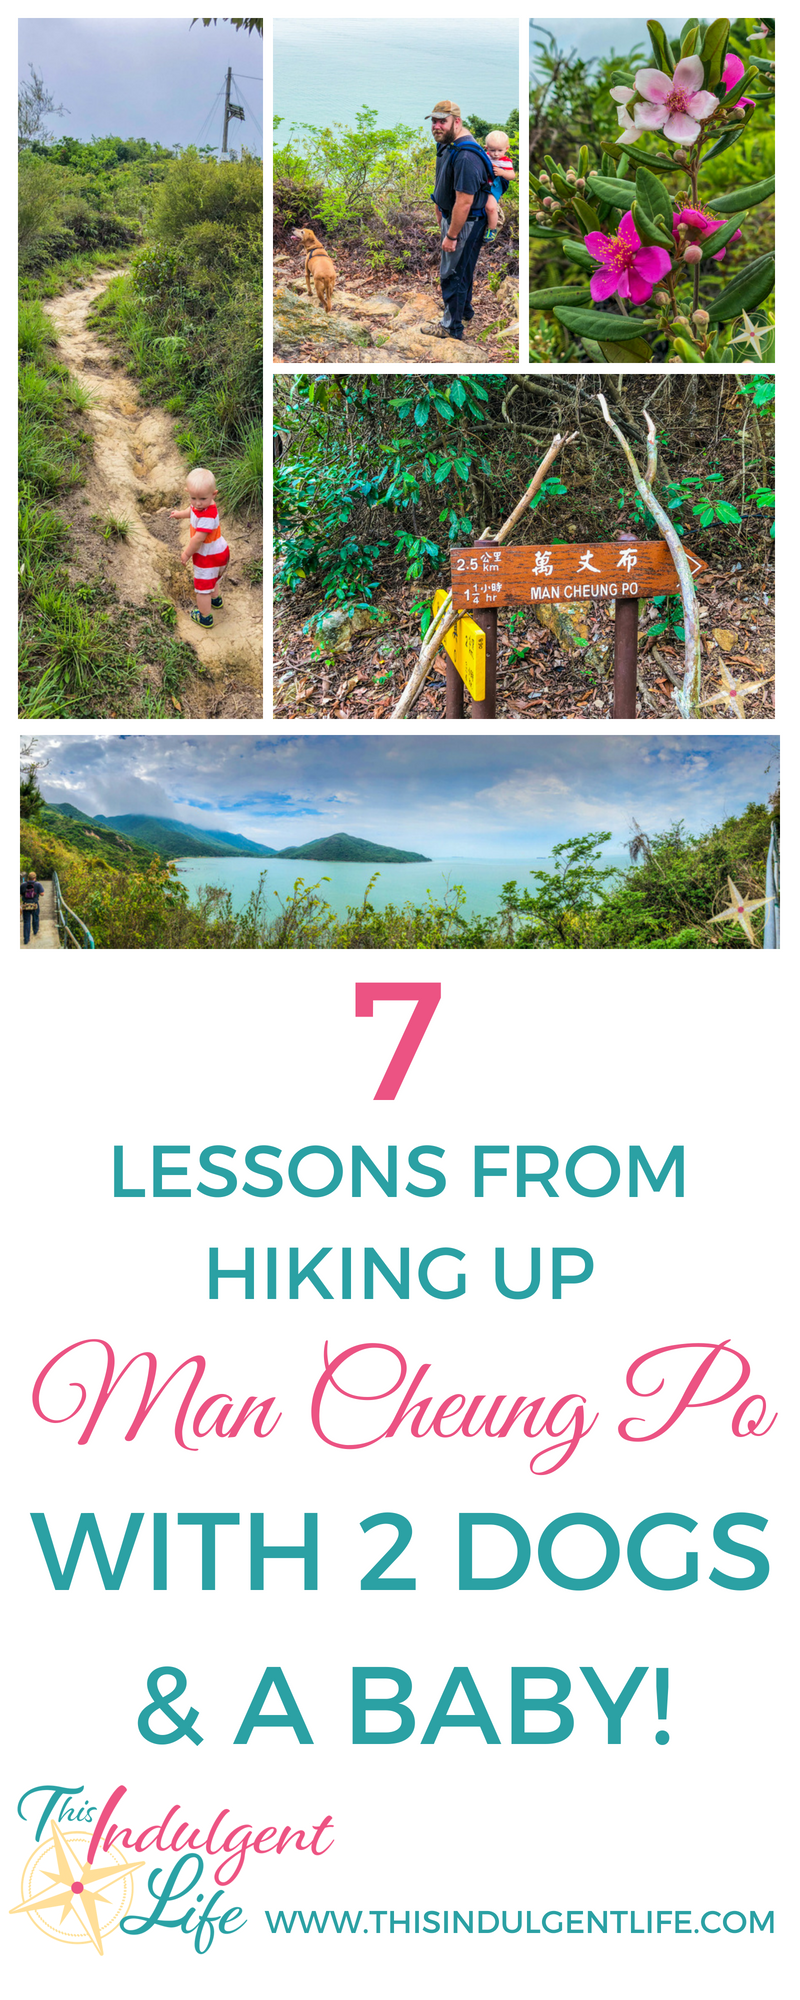 7 lessons from hiking up man cheung po with 2 dogs and a baby| This Indulgent Life | Live this adventurous life by hiking with your family. Explore these 7 tips we learned as beginner hikers with 2 dogs and a baby. | #hikingwithkids #hikingforbeginners #naturelovers #hikingtips #mancheungpo #hongkonghikes #hikingwithchildren #hikingtrails #hikinggear #hikingvideo #hikingwithdogs #familiybloggers #familyvlogs #familyadventures #getoutside